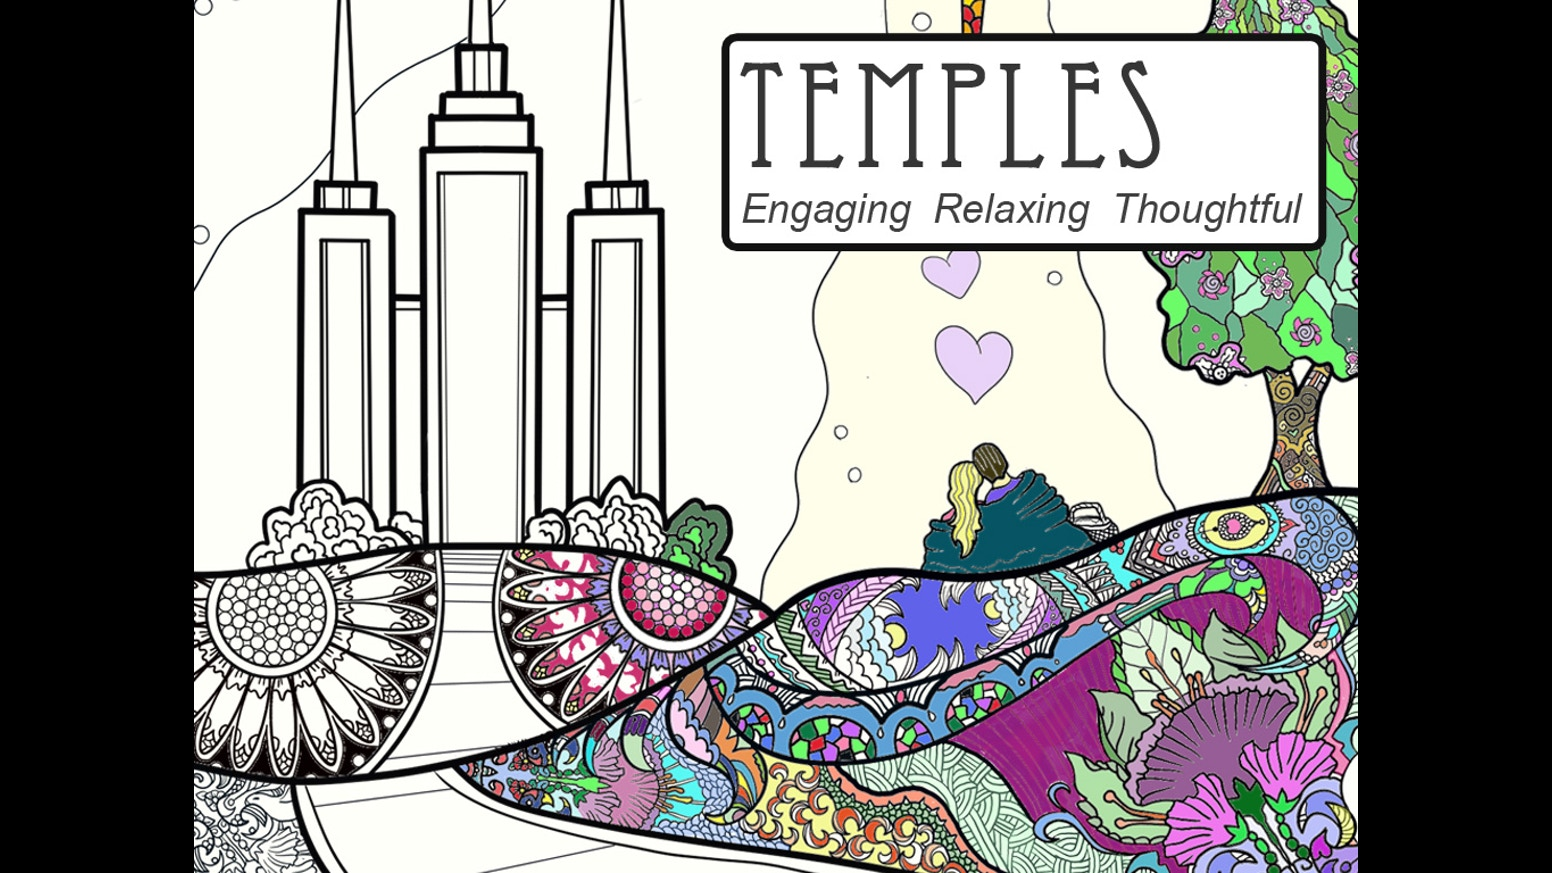 Coloring book html5 - Discover The Symbols And Stories Of Temples As You Color This Beautiful Book Combines Scripture